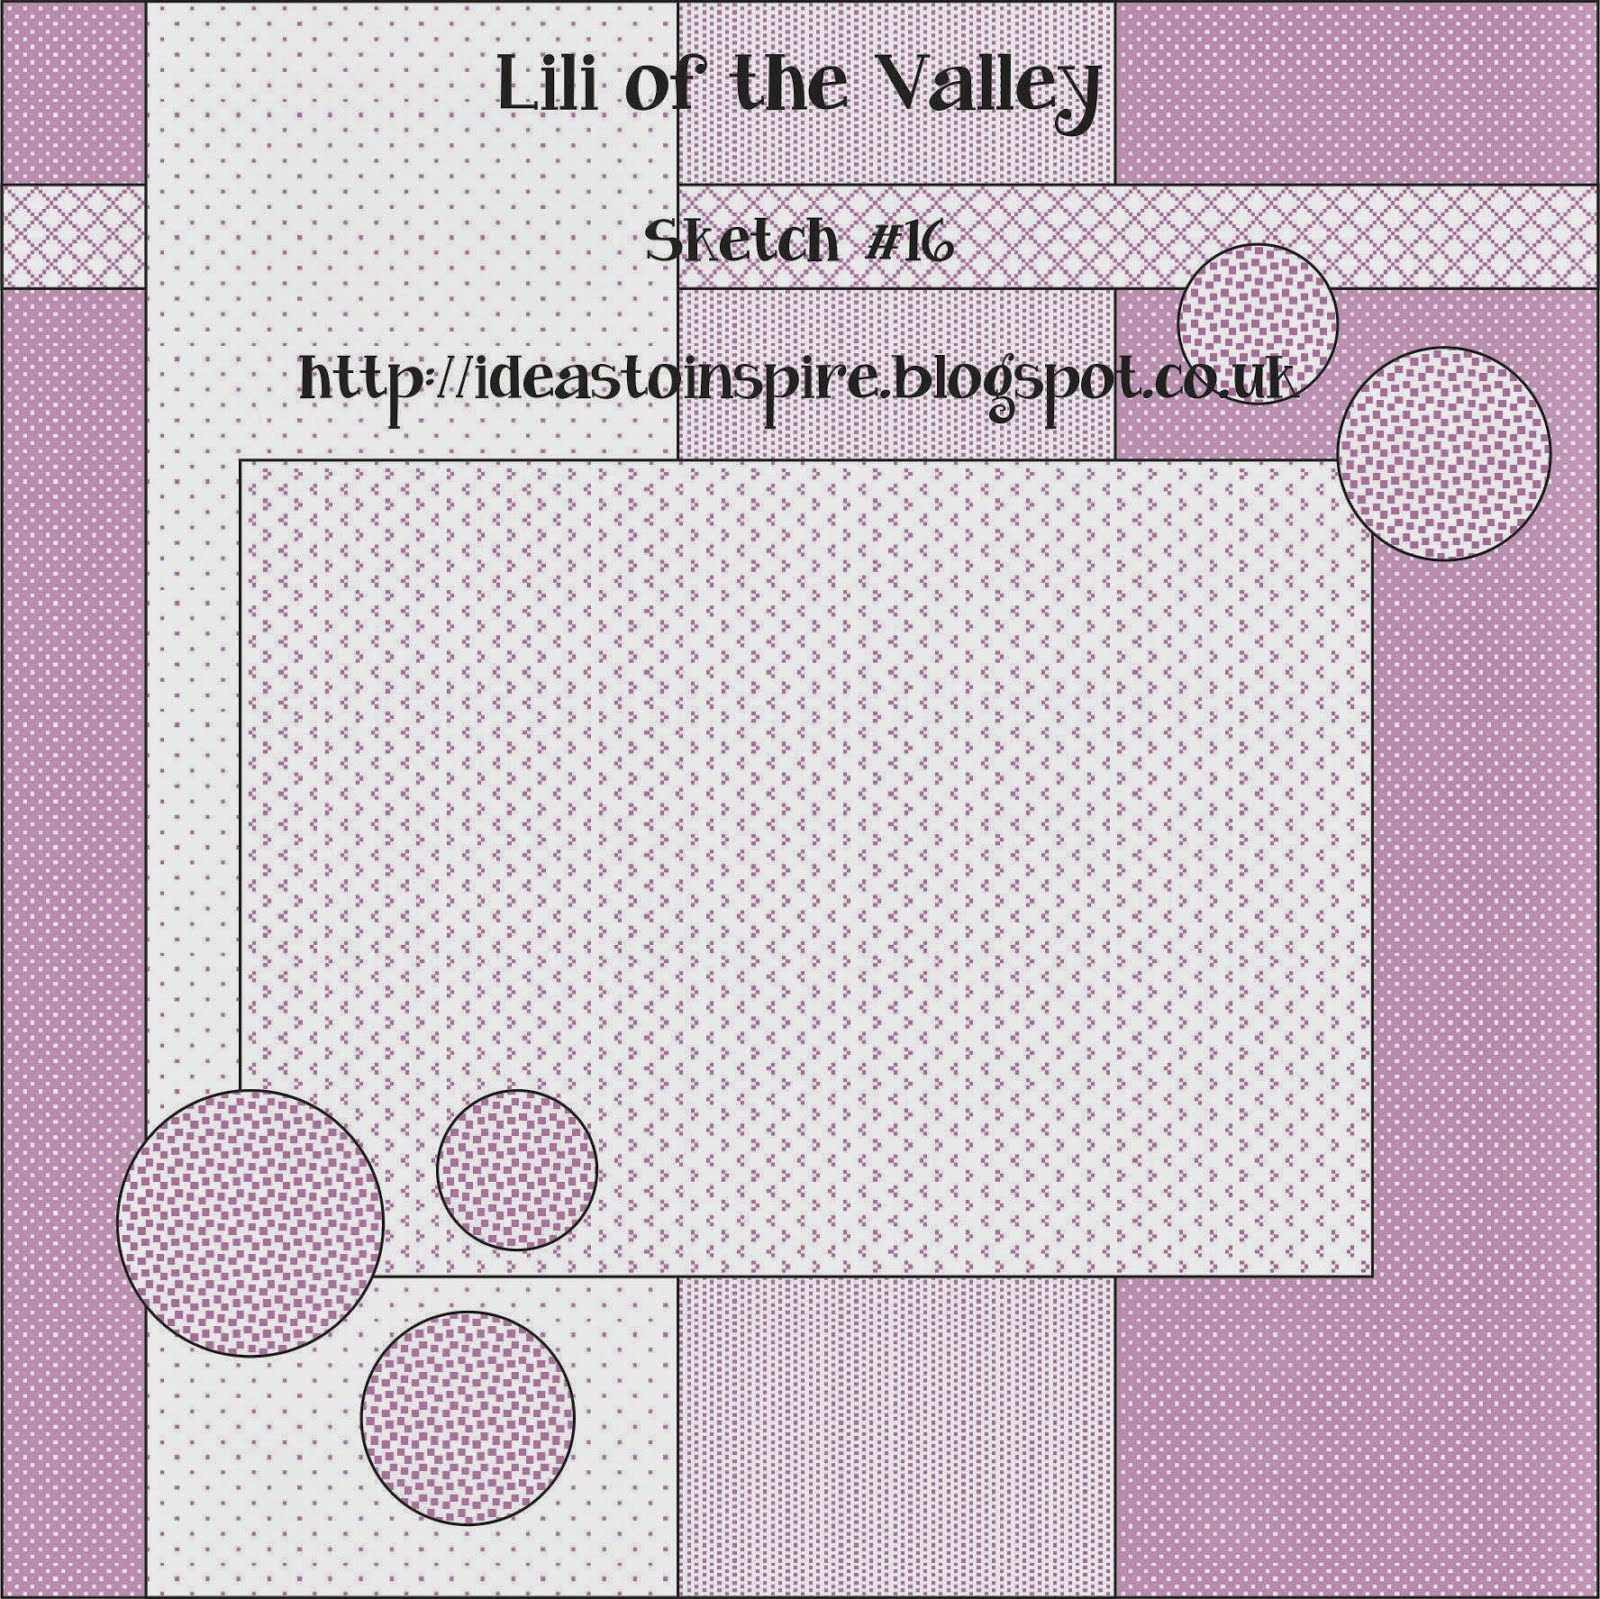 Lili of the Valley - Sketch #16